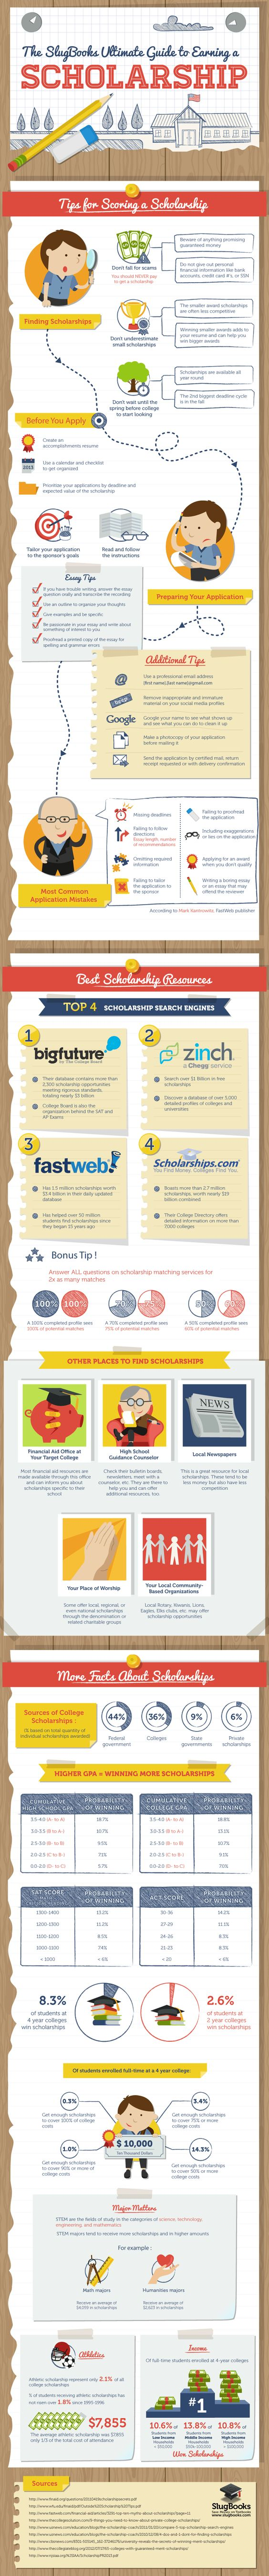 Having trouble finding money for college? Finding financial aid resources is tough. Here is the ultimate guide to finding money for school and earning scholarships.